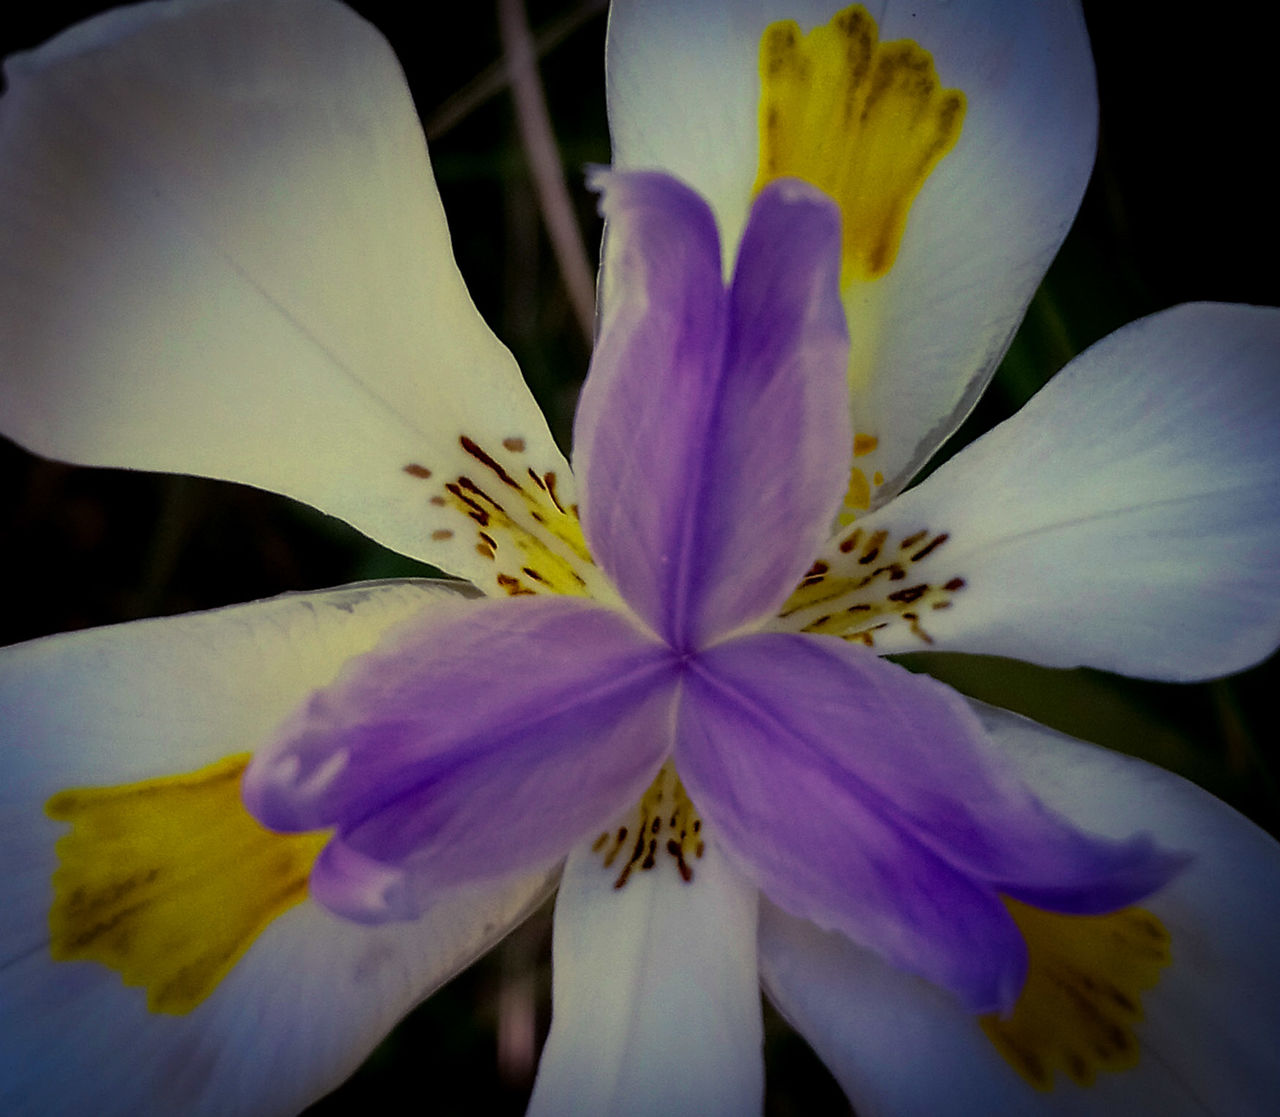 flower, petal, fragility, flower head, beauty in nature, freshness, nature, growth, close-up, stamen, blossom, pollen, springtime, no people, blooming, outdoors, day, plant